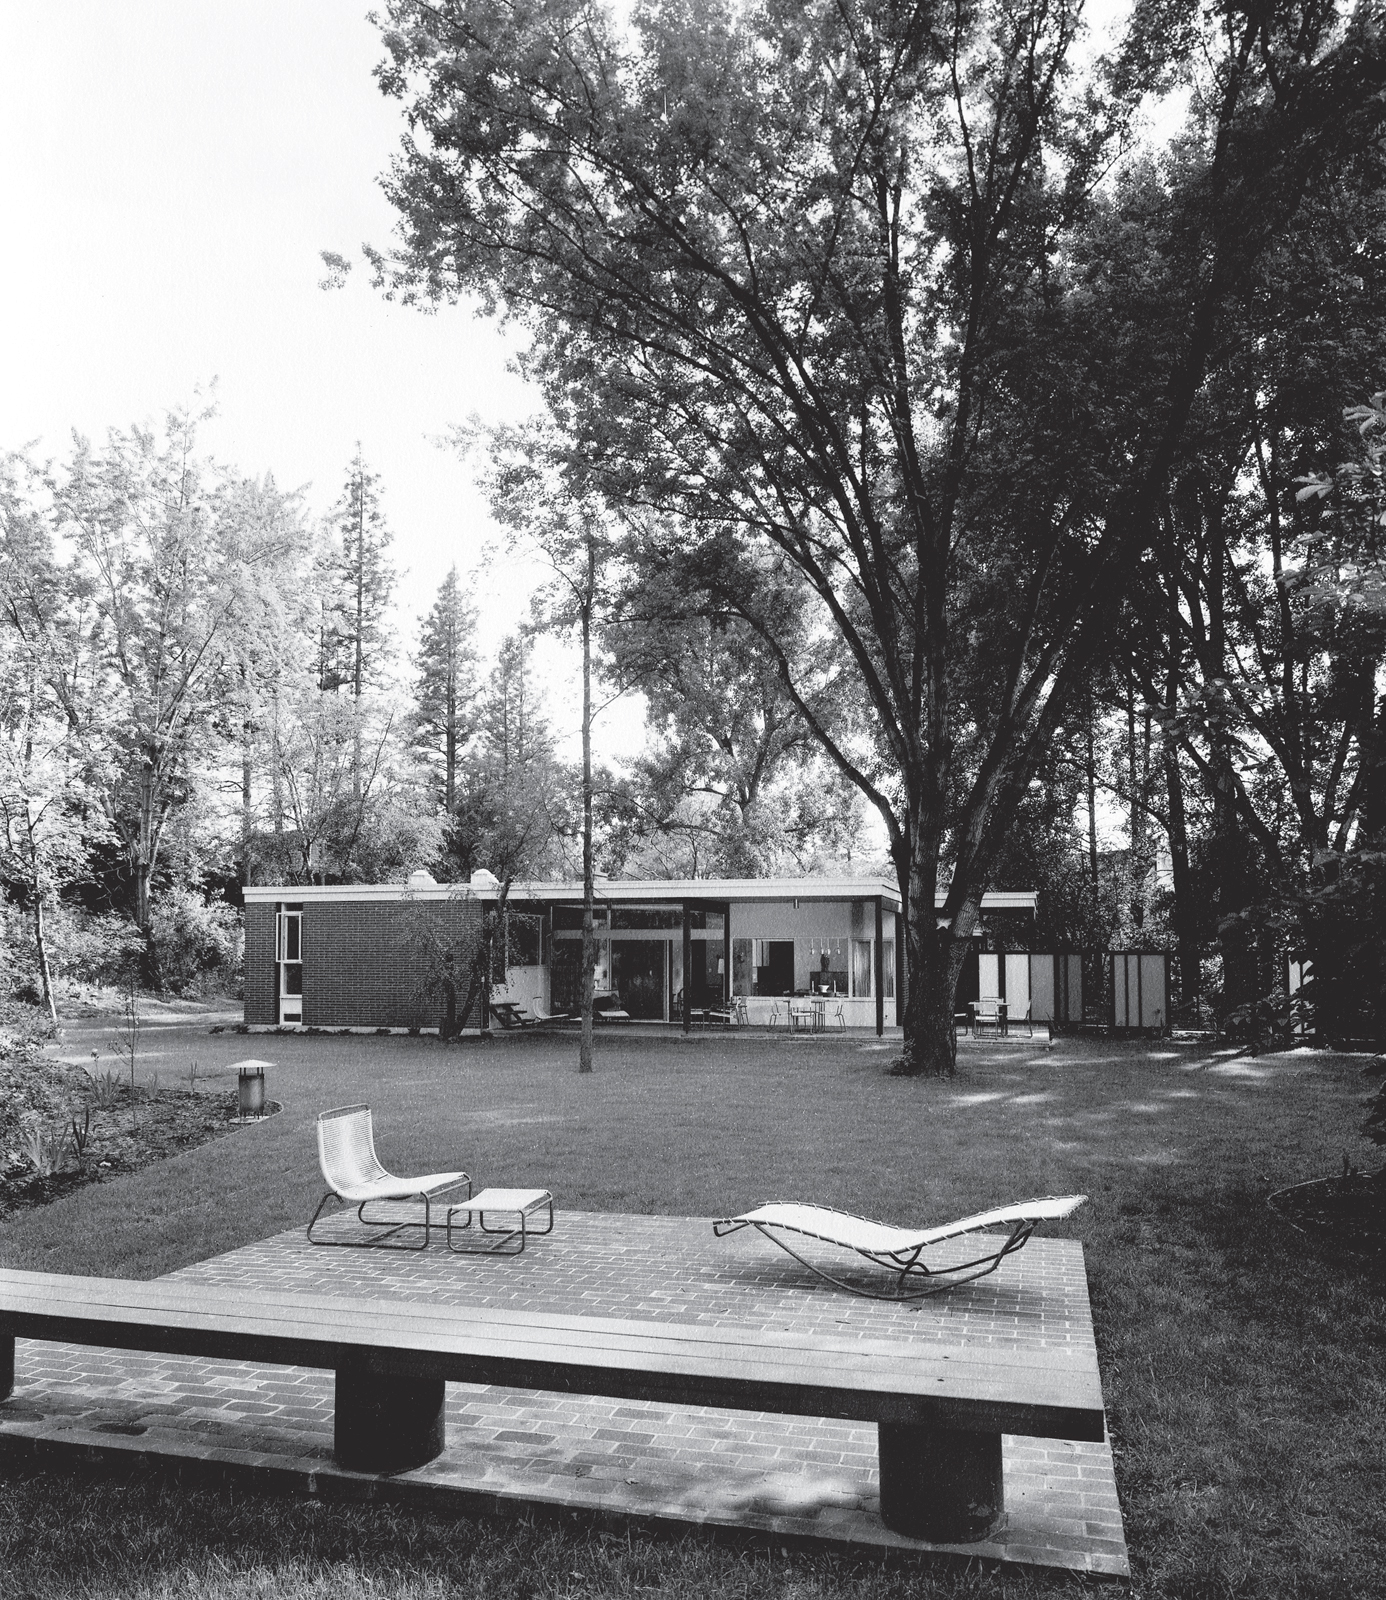 1955 Mid century home in Spokane Washington